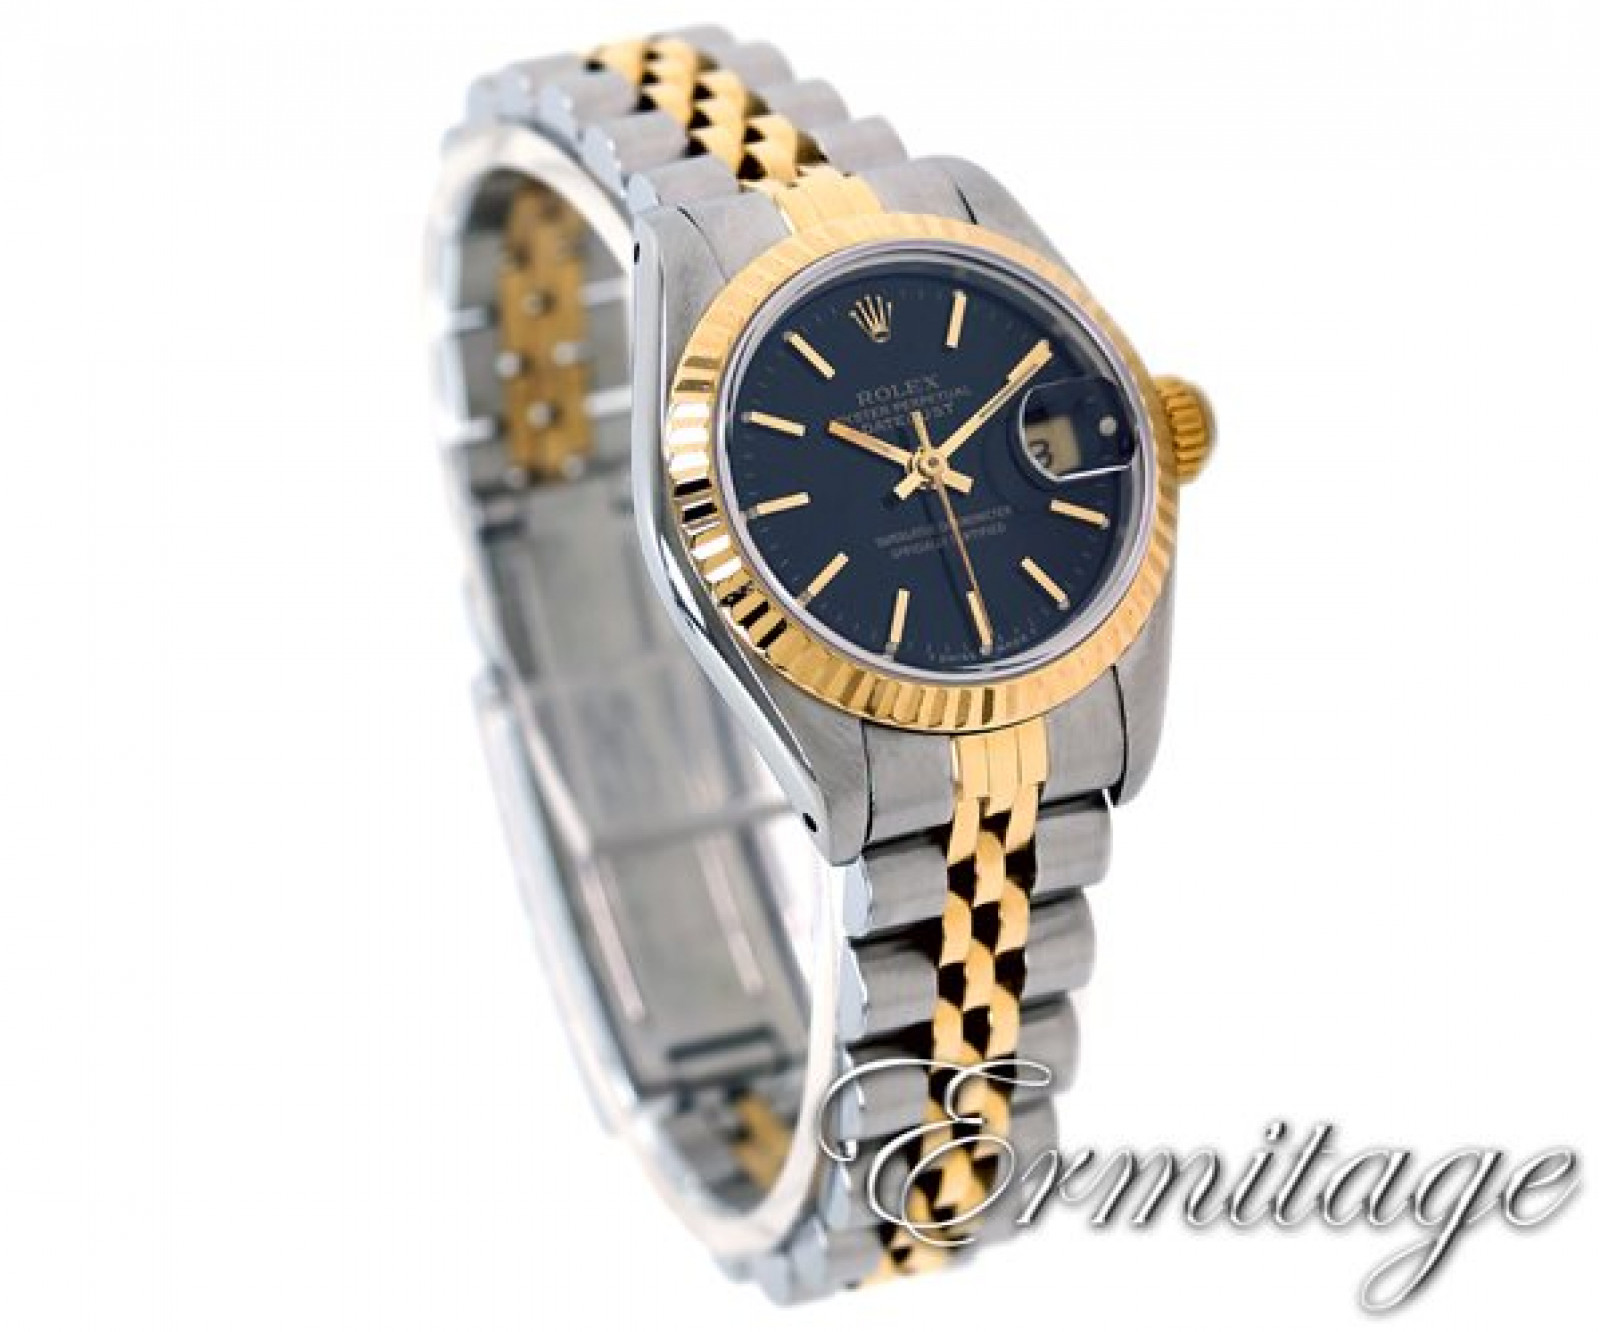 Rolex Datejust 69173 Gold & Steel With Black Dial